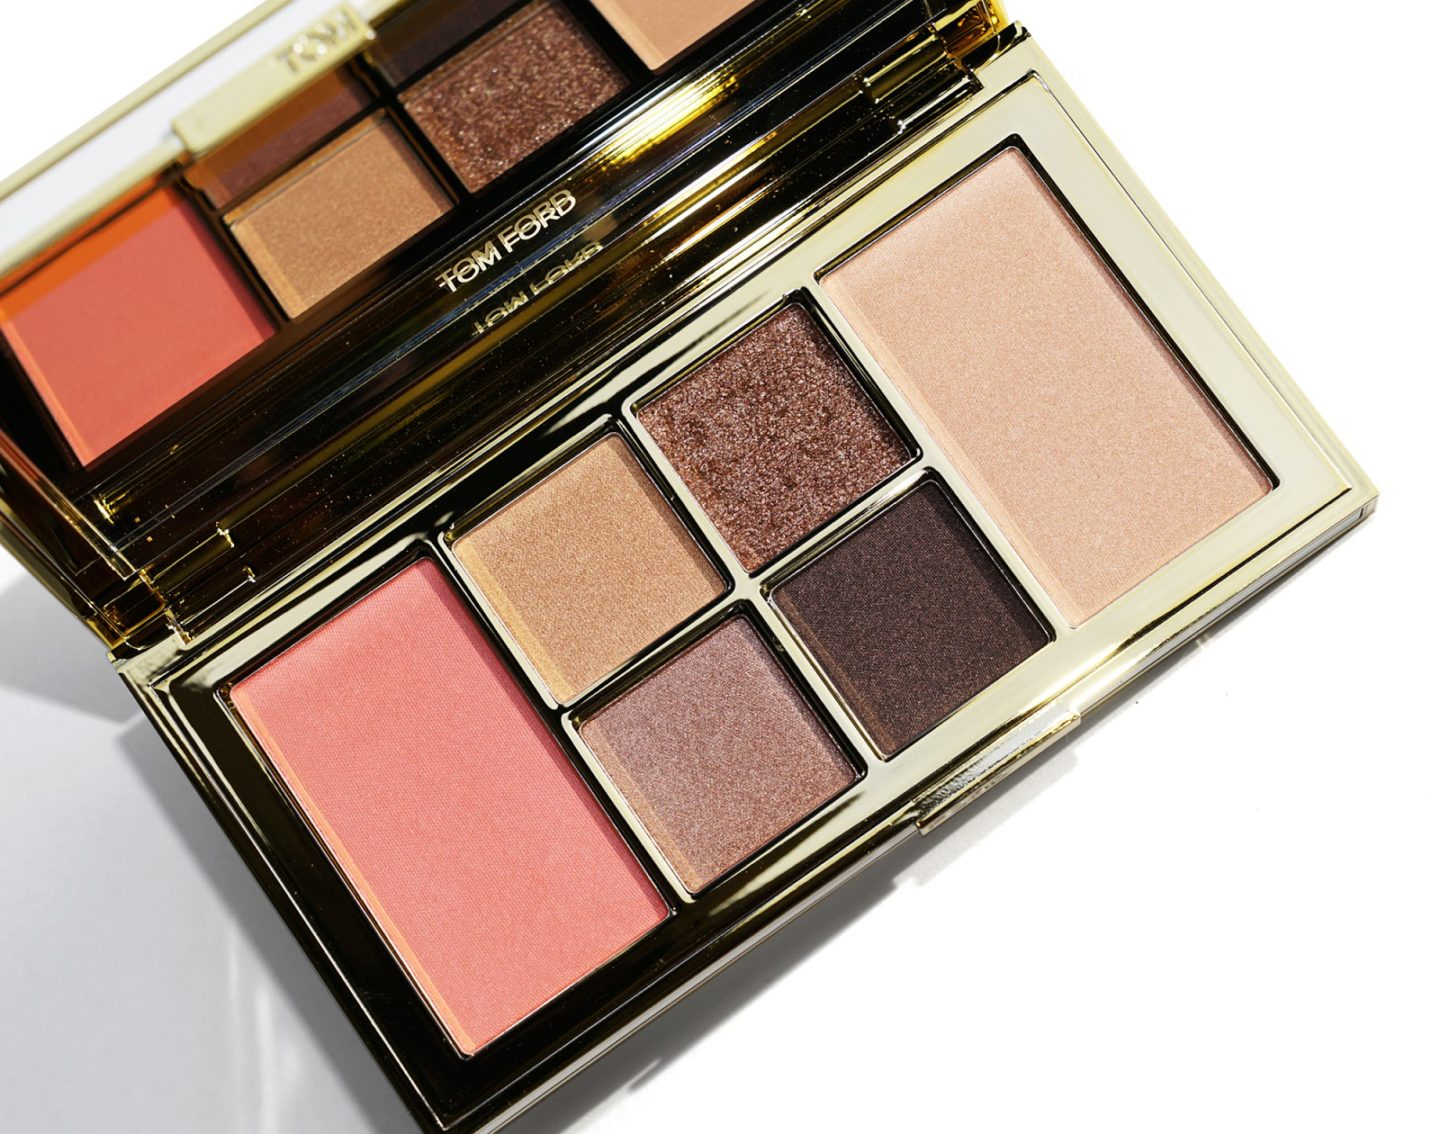 Tom Ford Beauty Winter Soleil 2016 Eye Cheek Palette Warm - The Beauty Look Book